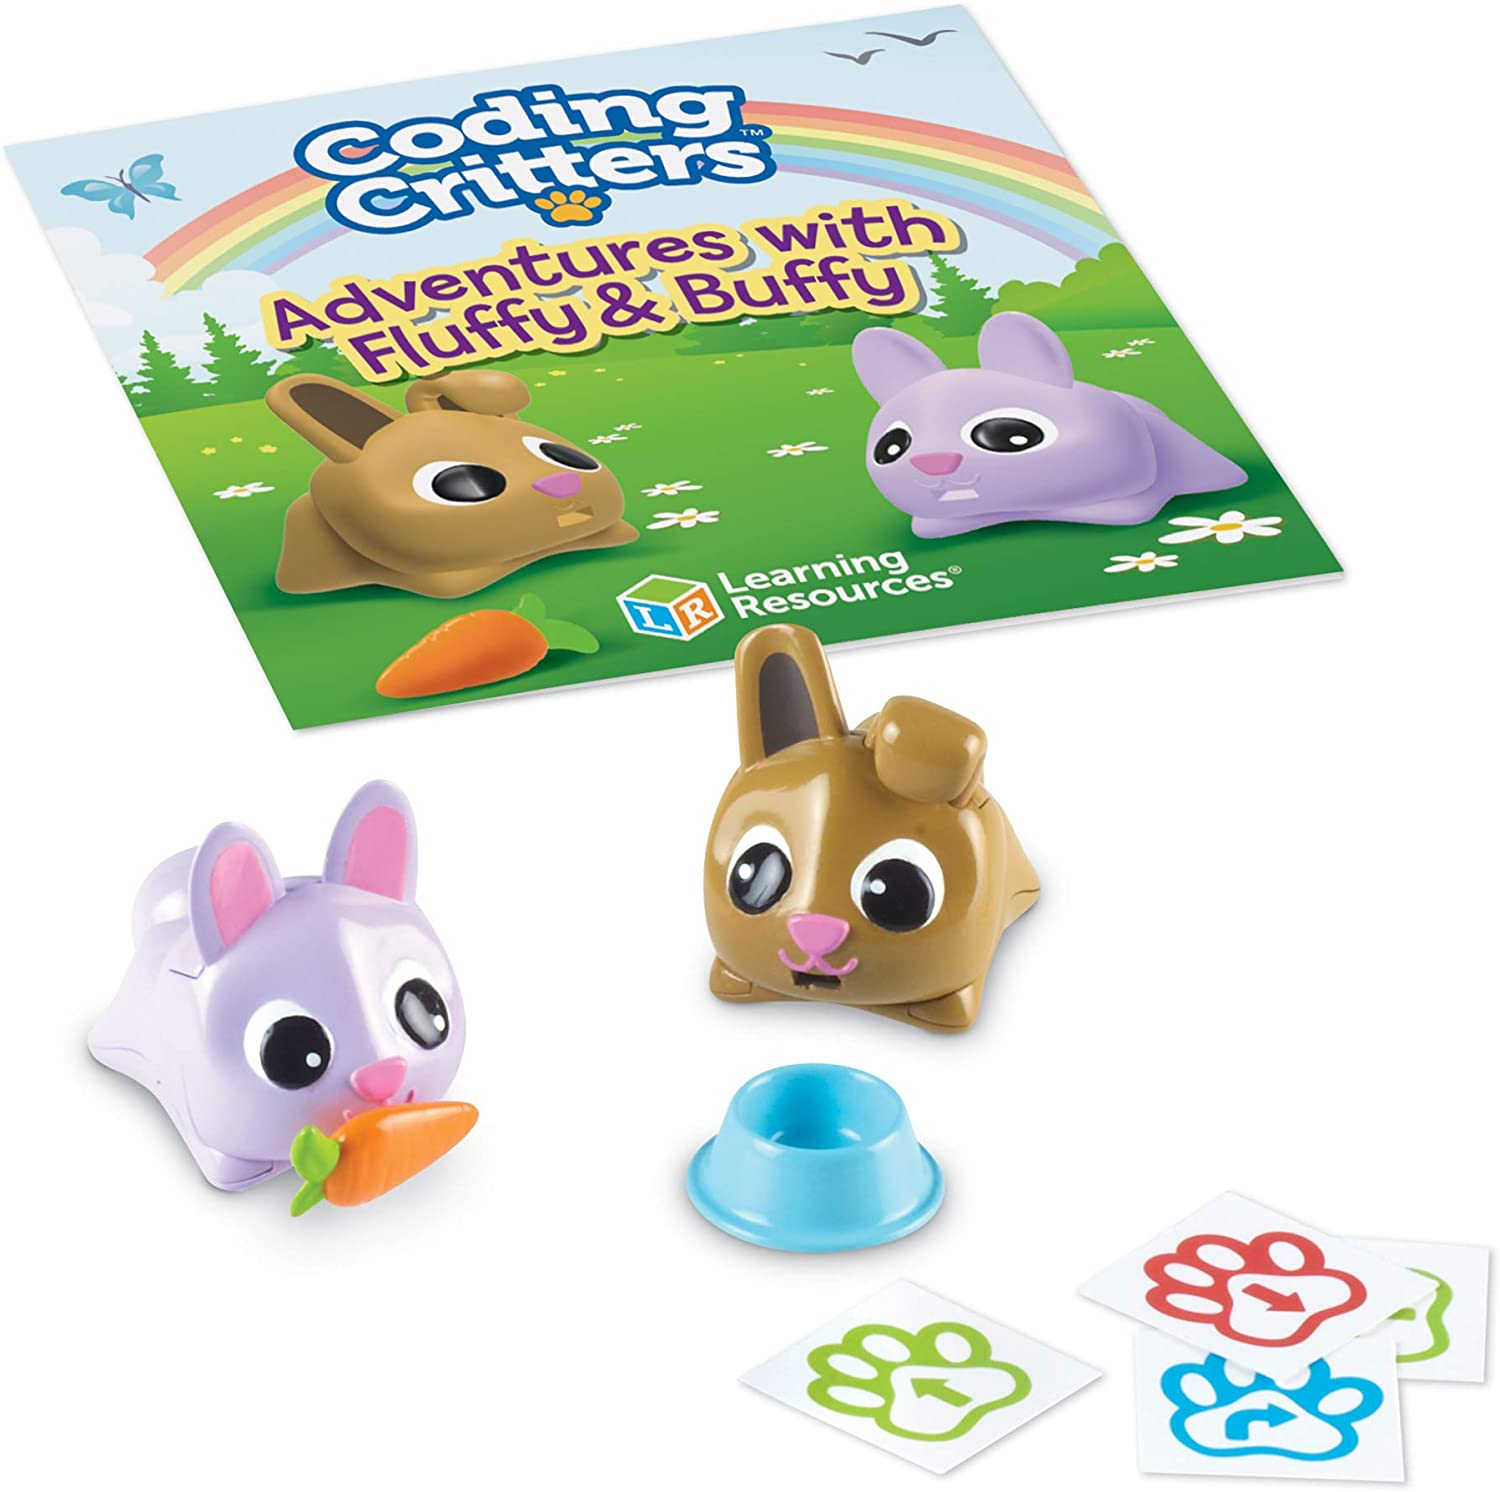 Learning Resources Coding Critters Pair a Pets Bunnies Fluffy & Buffy, Early STEM Coding Toy, Interactive Pet, Ages 4+